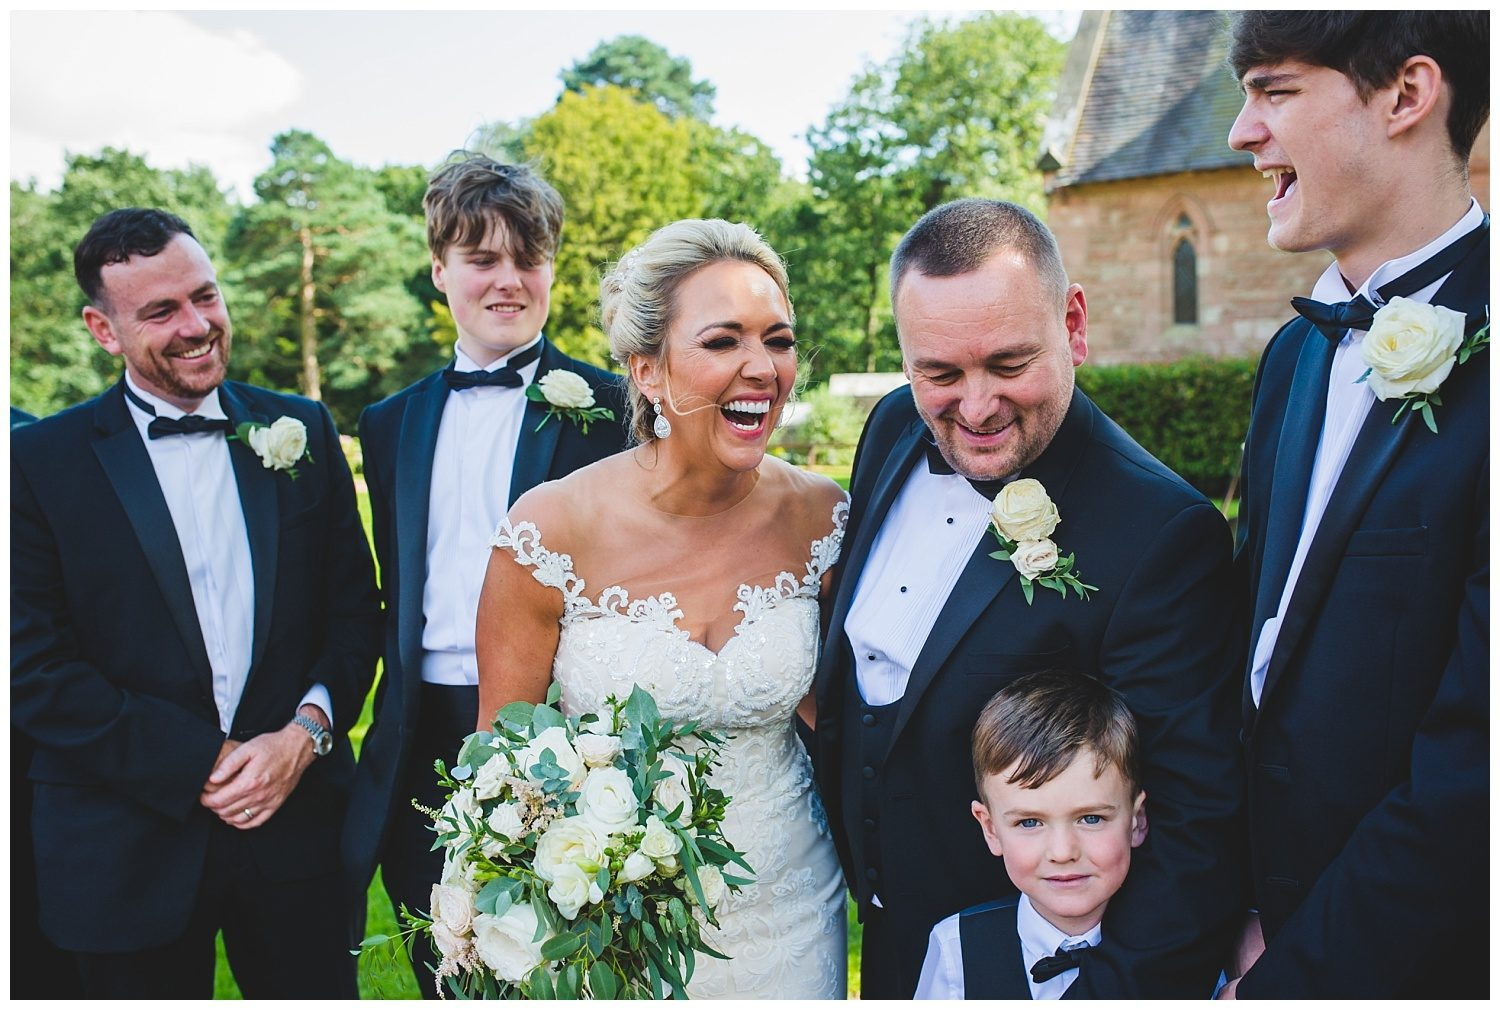 Bridal party at Peckforton Castle wedding